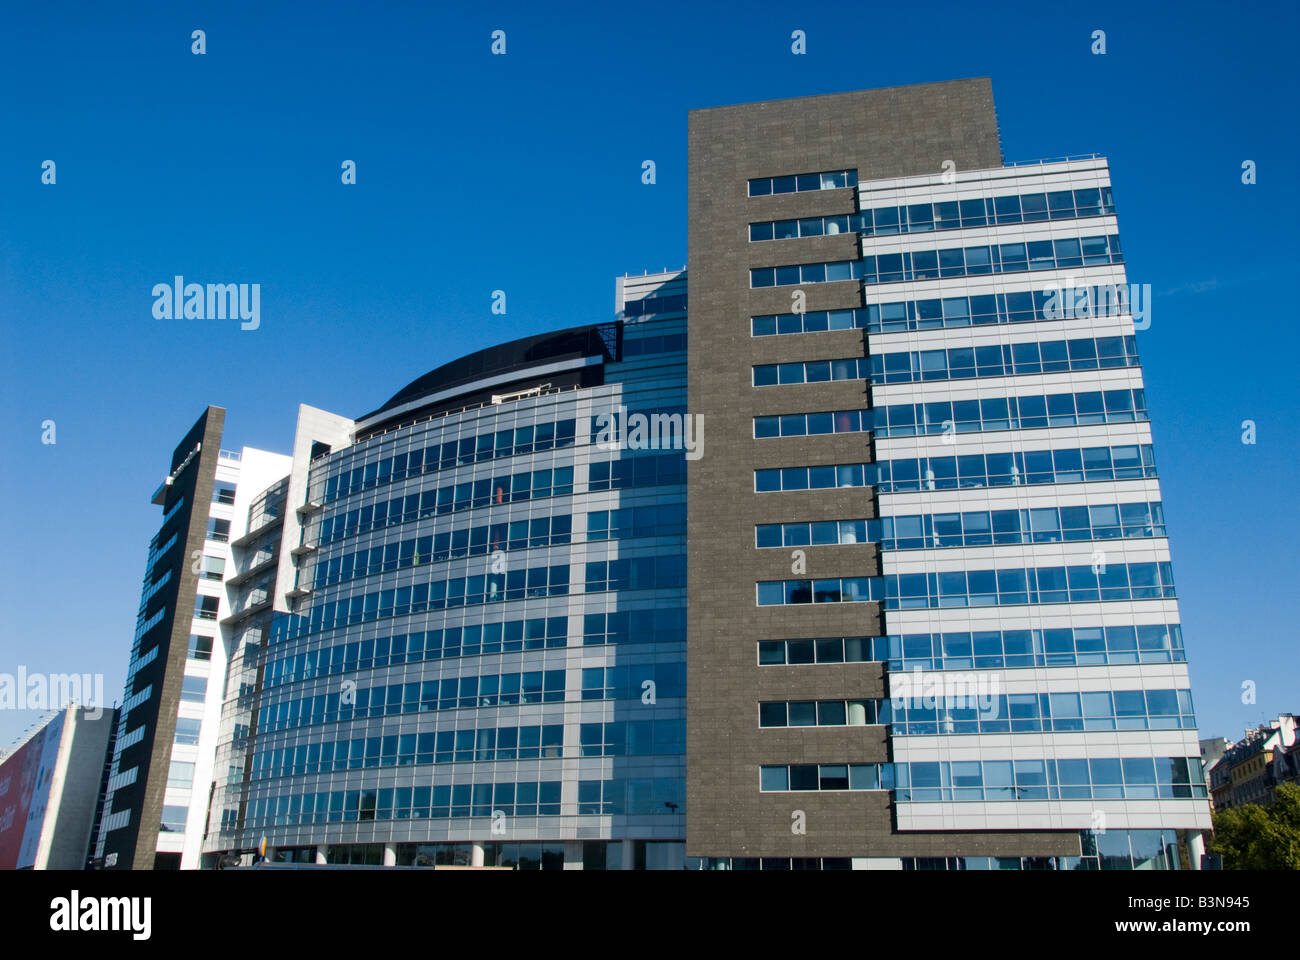 International Business Center Warsaw - Stock Image